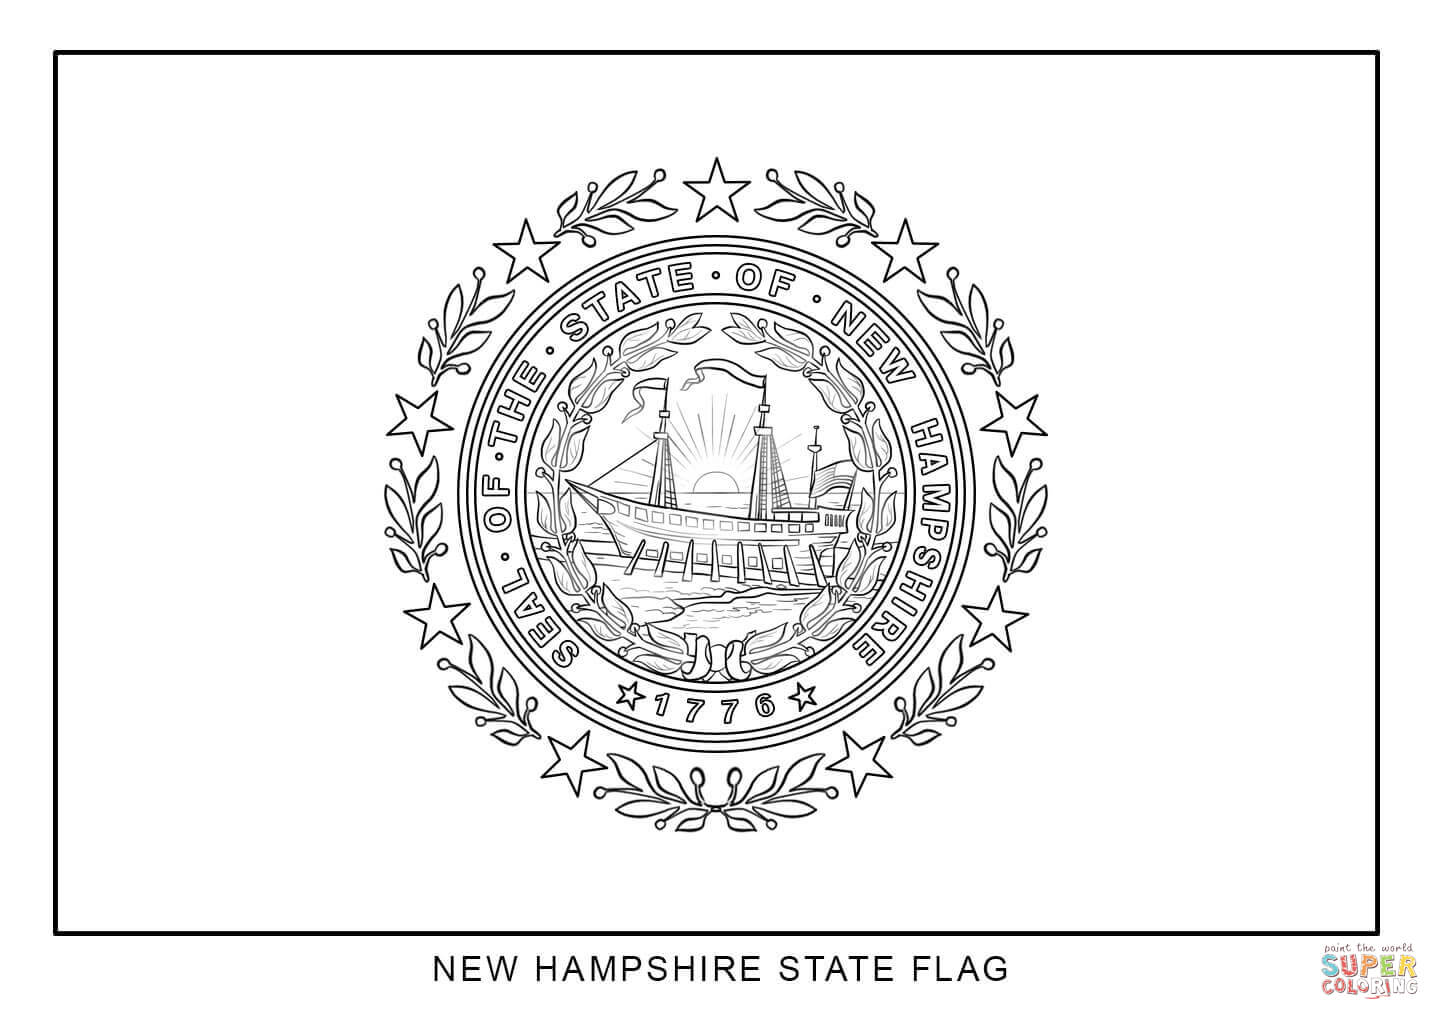 new jersey state seal coloring page flag of new hampshire coloring page free printable jersey seal coloring page state new